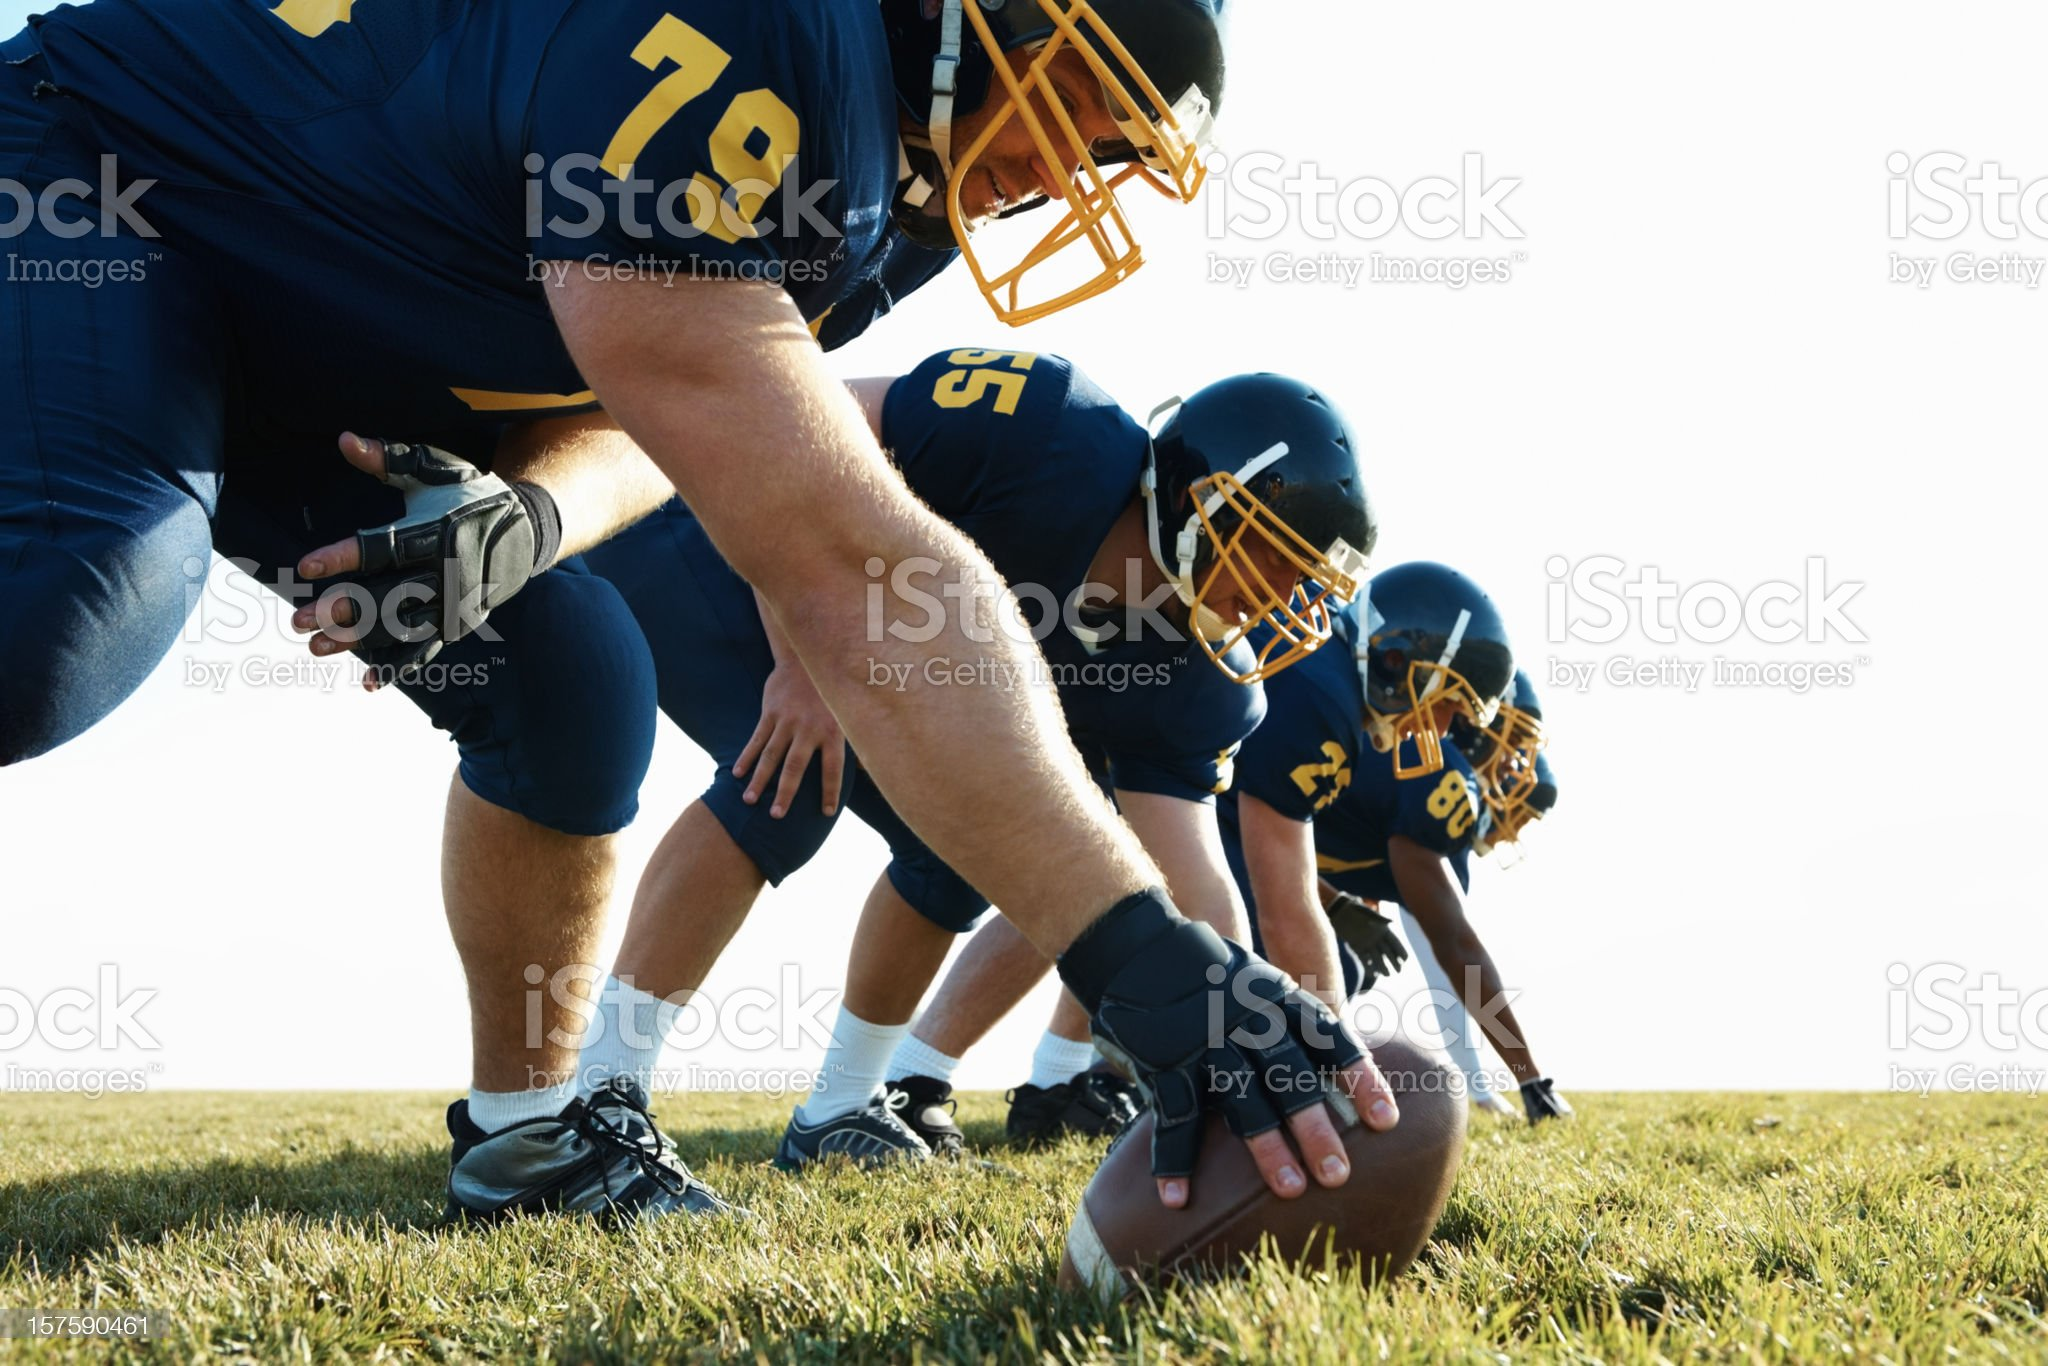 Football players bending at line of scrimmage royalty-free stock photo